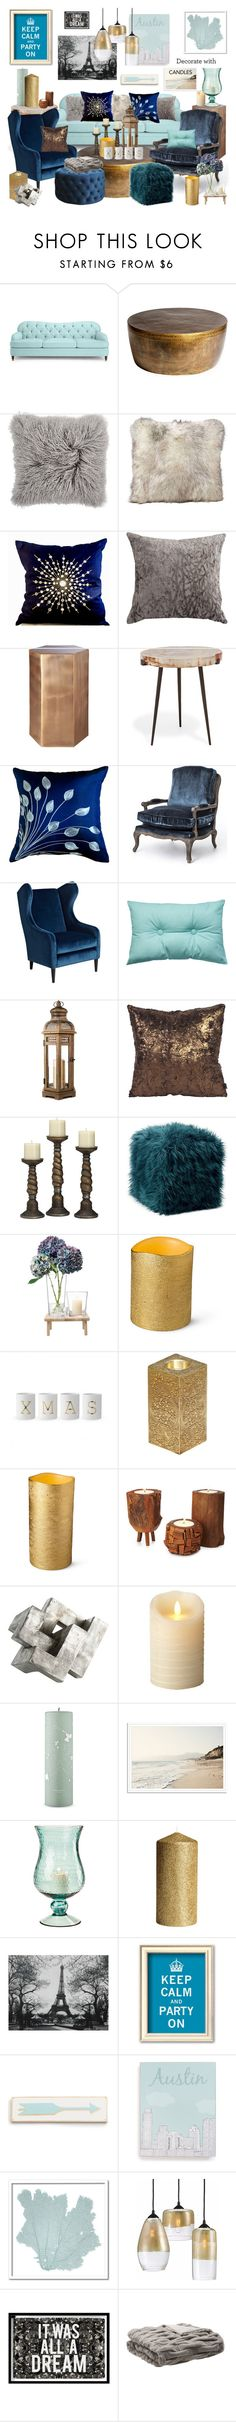 """Navy + Gold + Tiffany Blue"" by leiastyle ❤ liked on Polyvore featuring interior, interiors, interior design, home, home decor, interior decorating, Kate Spade, Global Views, CB2 and Essenza"